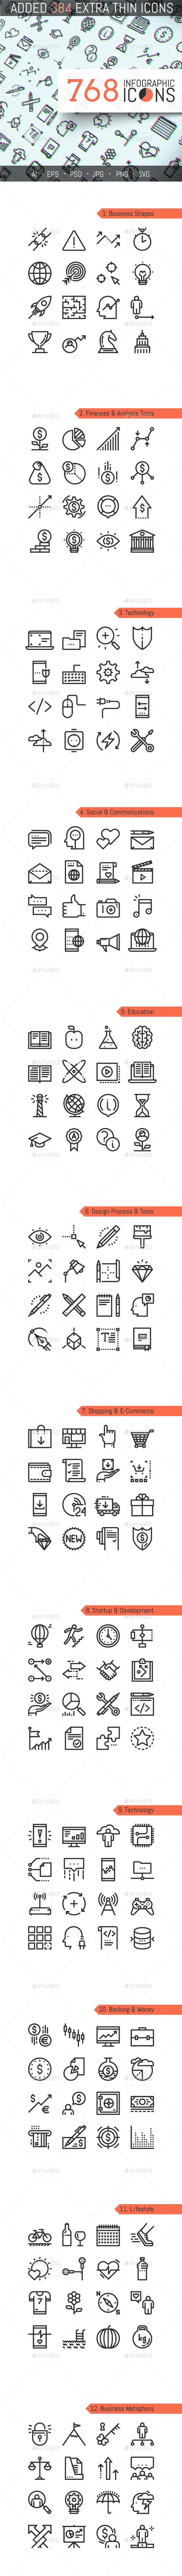 768 Infographic Icons Pack - Business Icons